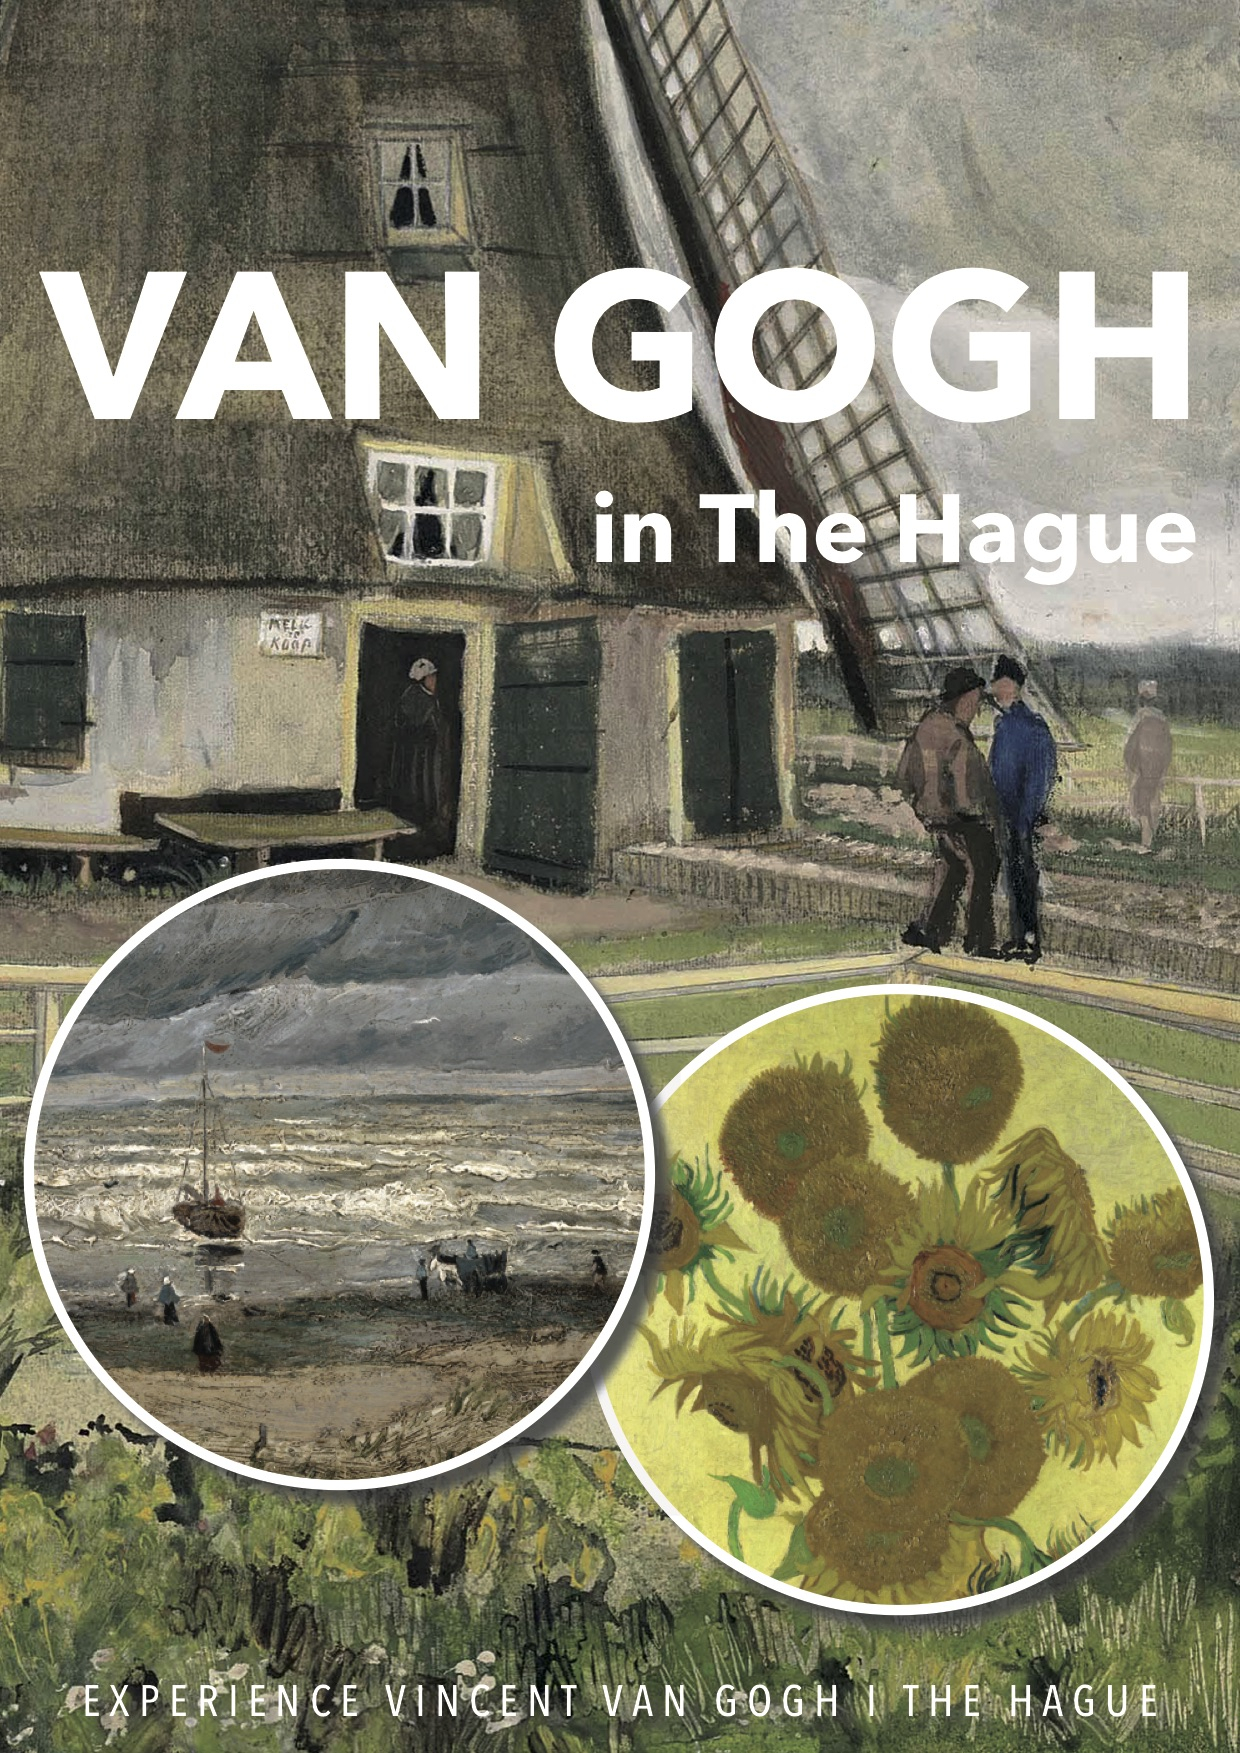 Van Gogh in The Hague cover